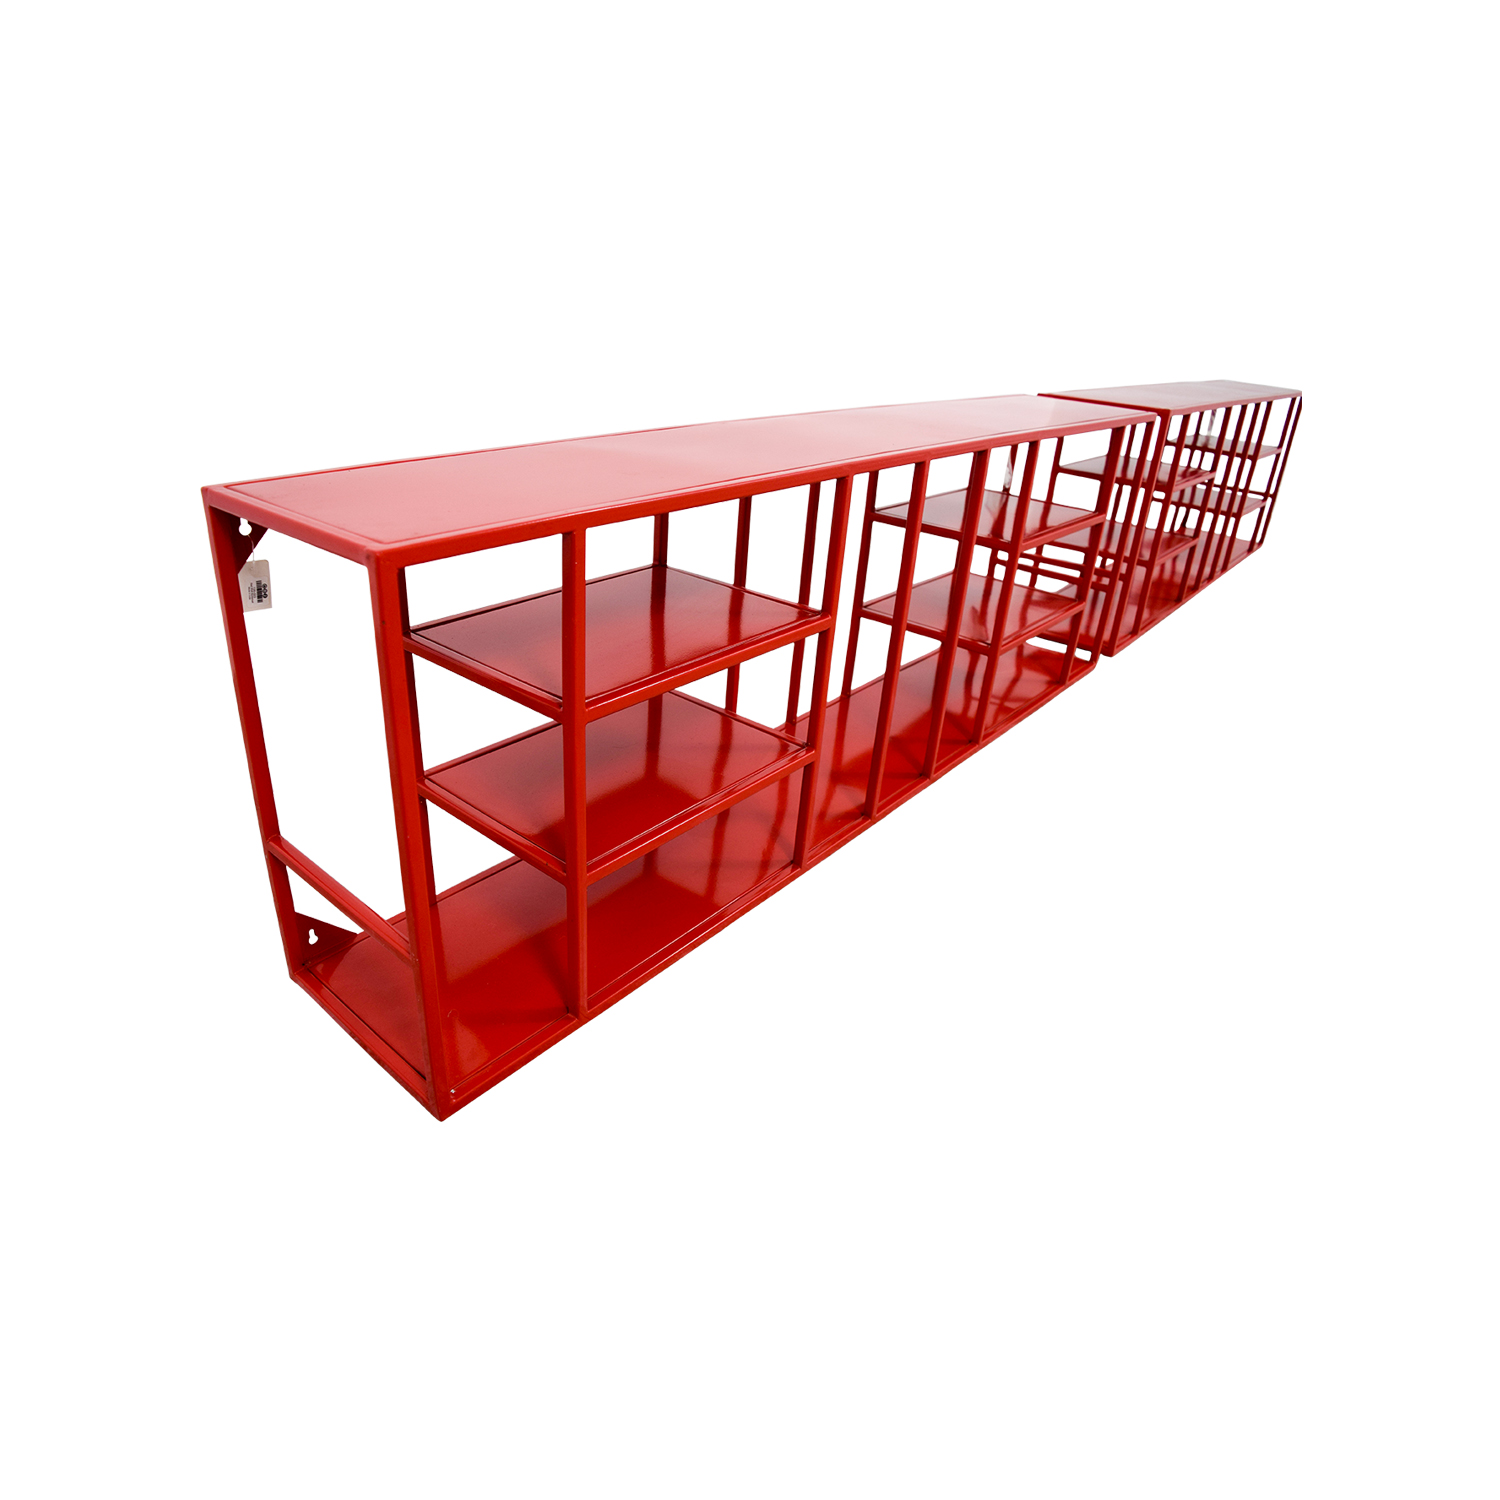 Miraculous 56 Off Cb2 Cb2 Red Metal Bookshelves Storage Interior Design Ideas Clesiryabchikinfo